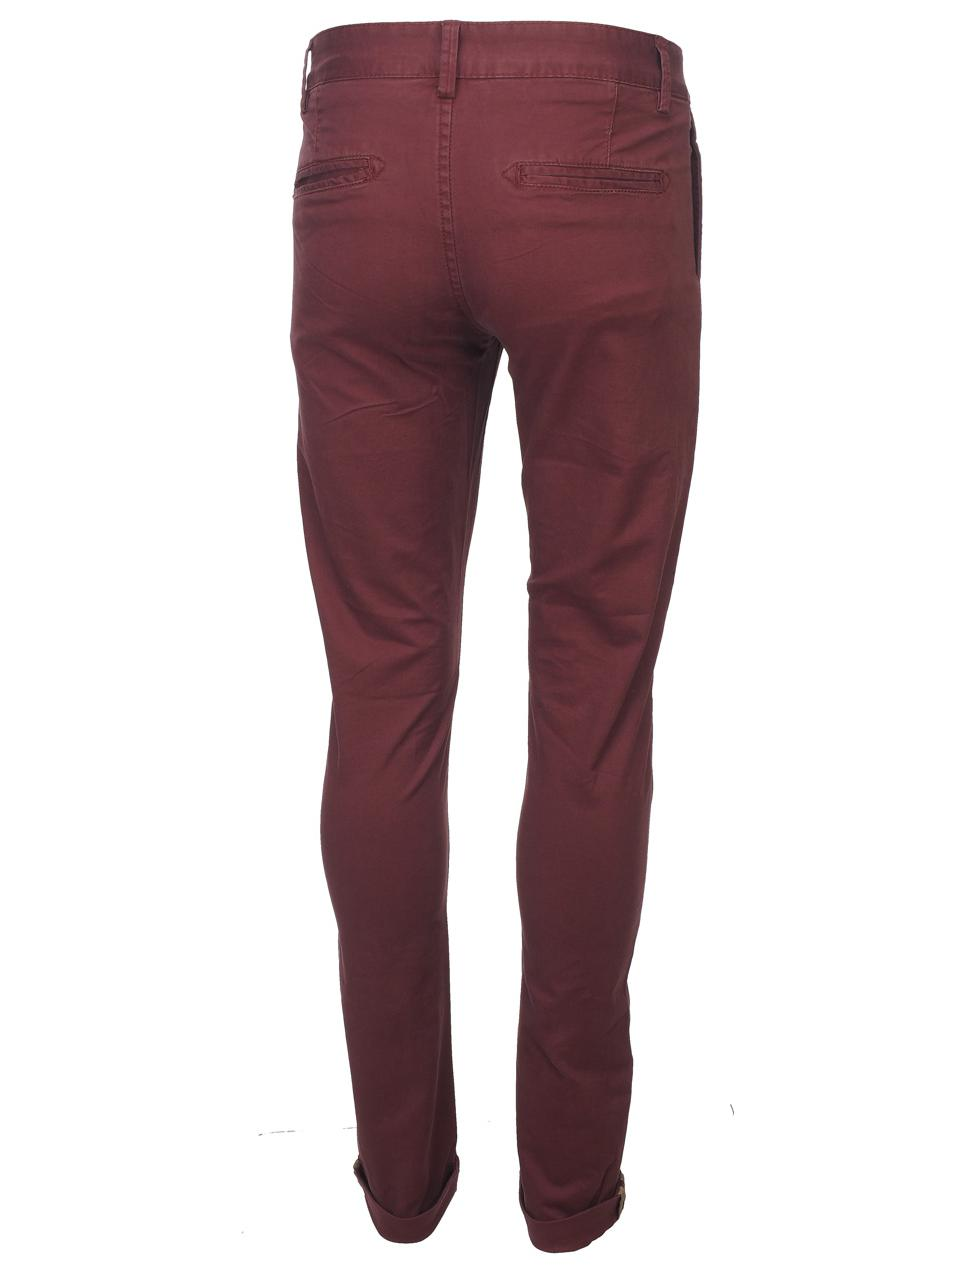 Pantalon-Crossby-Chino-bordeaux-pant-Rouge-44066-Neuf miniature 5